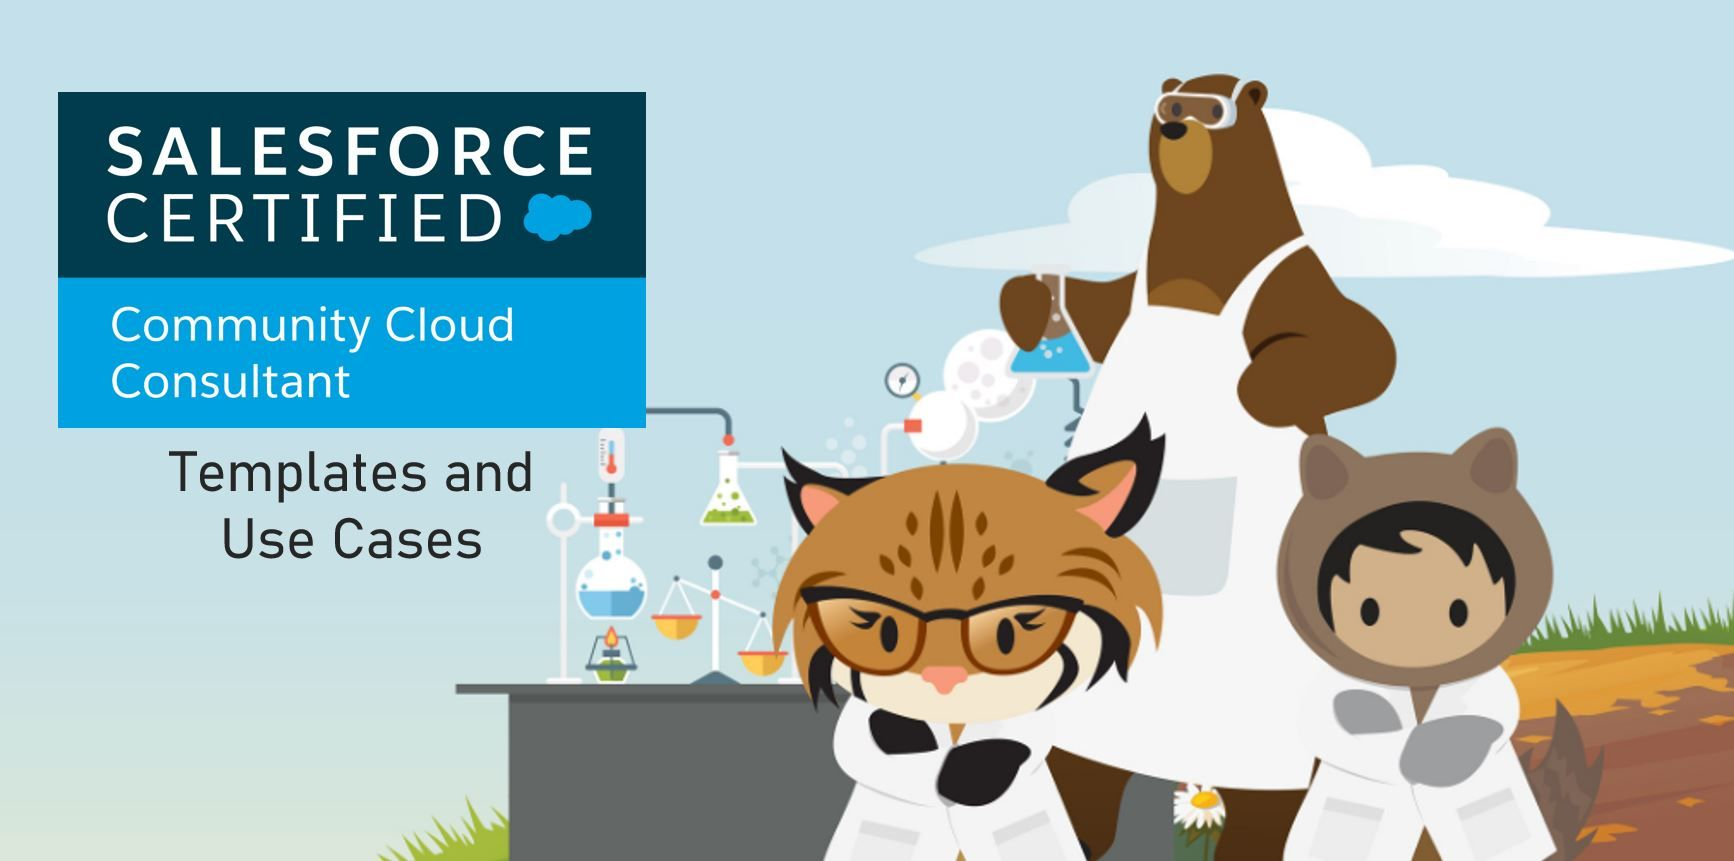 Salesforce Community Cloud Consultant Exam Preparation: Templates and Use Cases